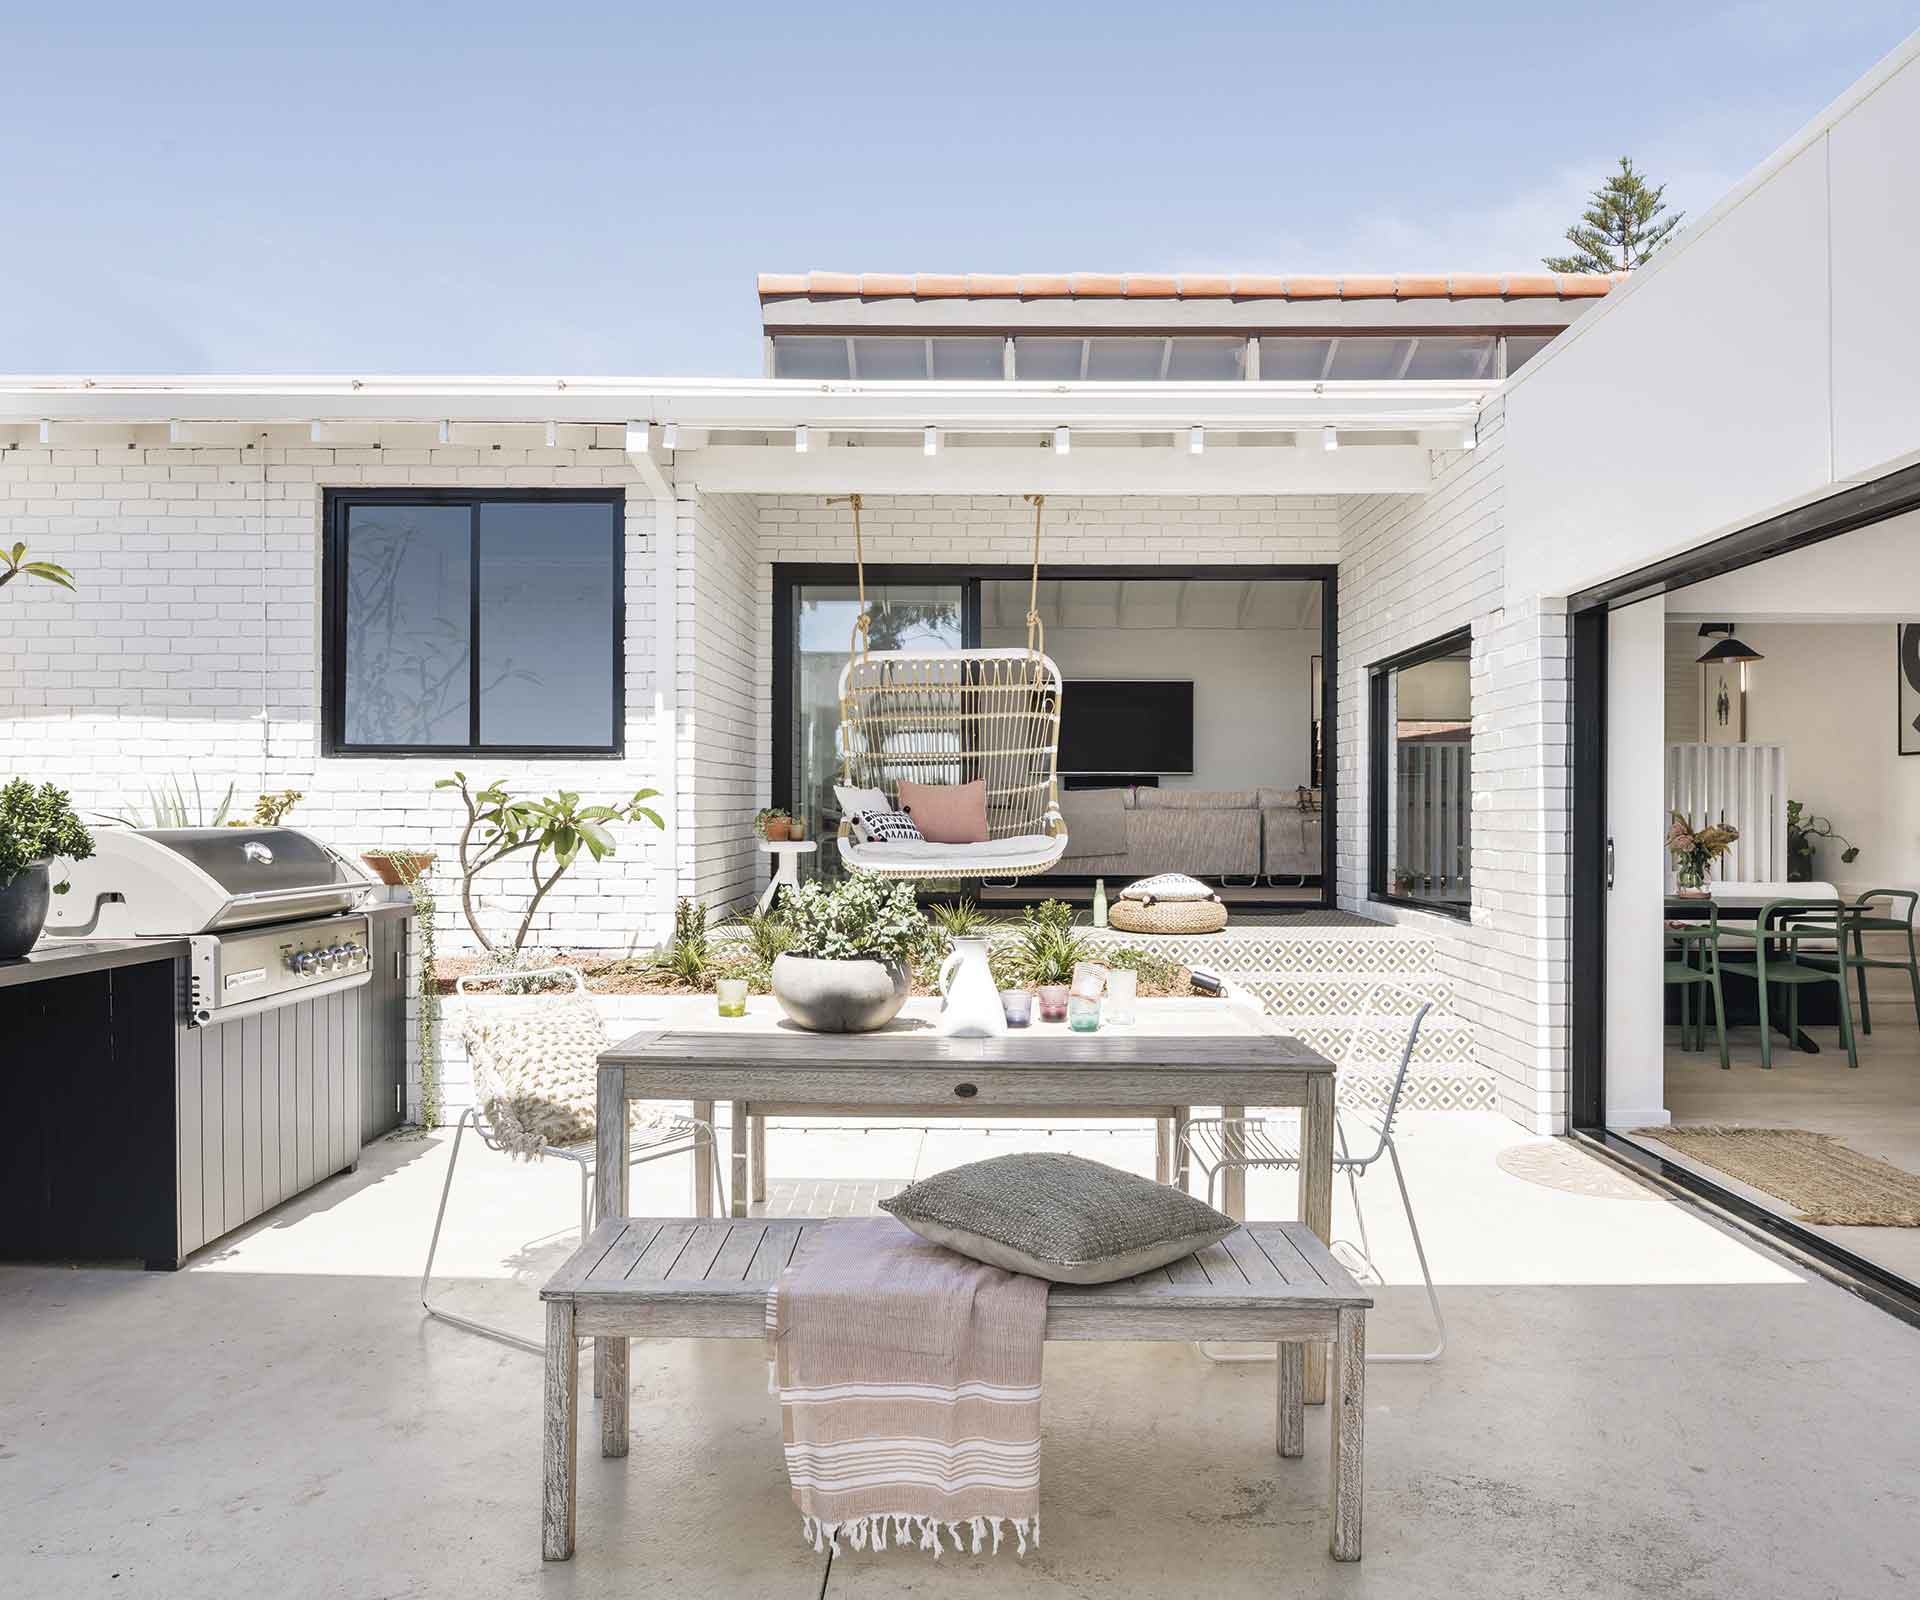 A coastal bungalow in Karrinyup's light-filled renovation